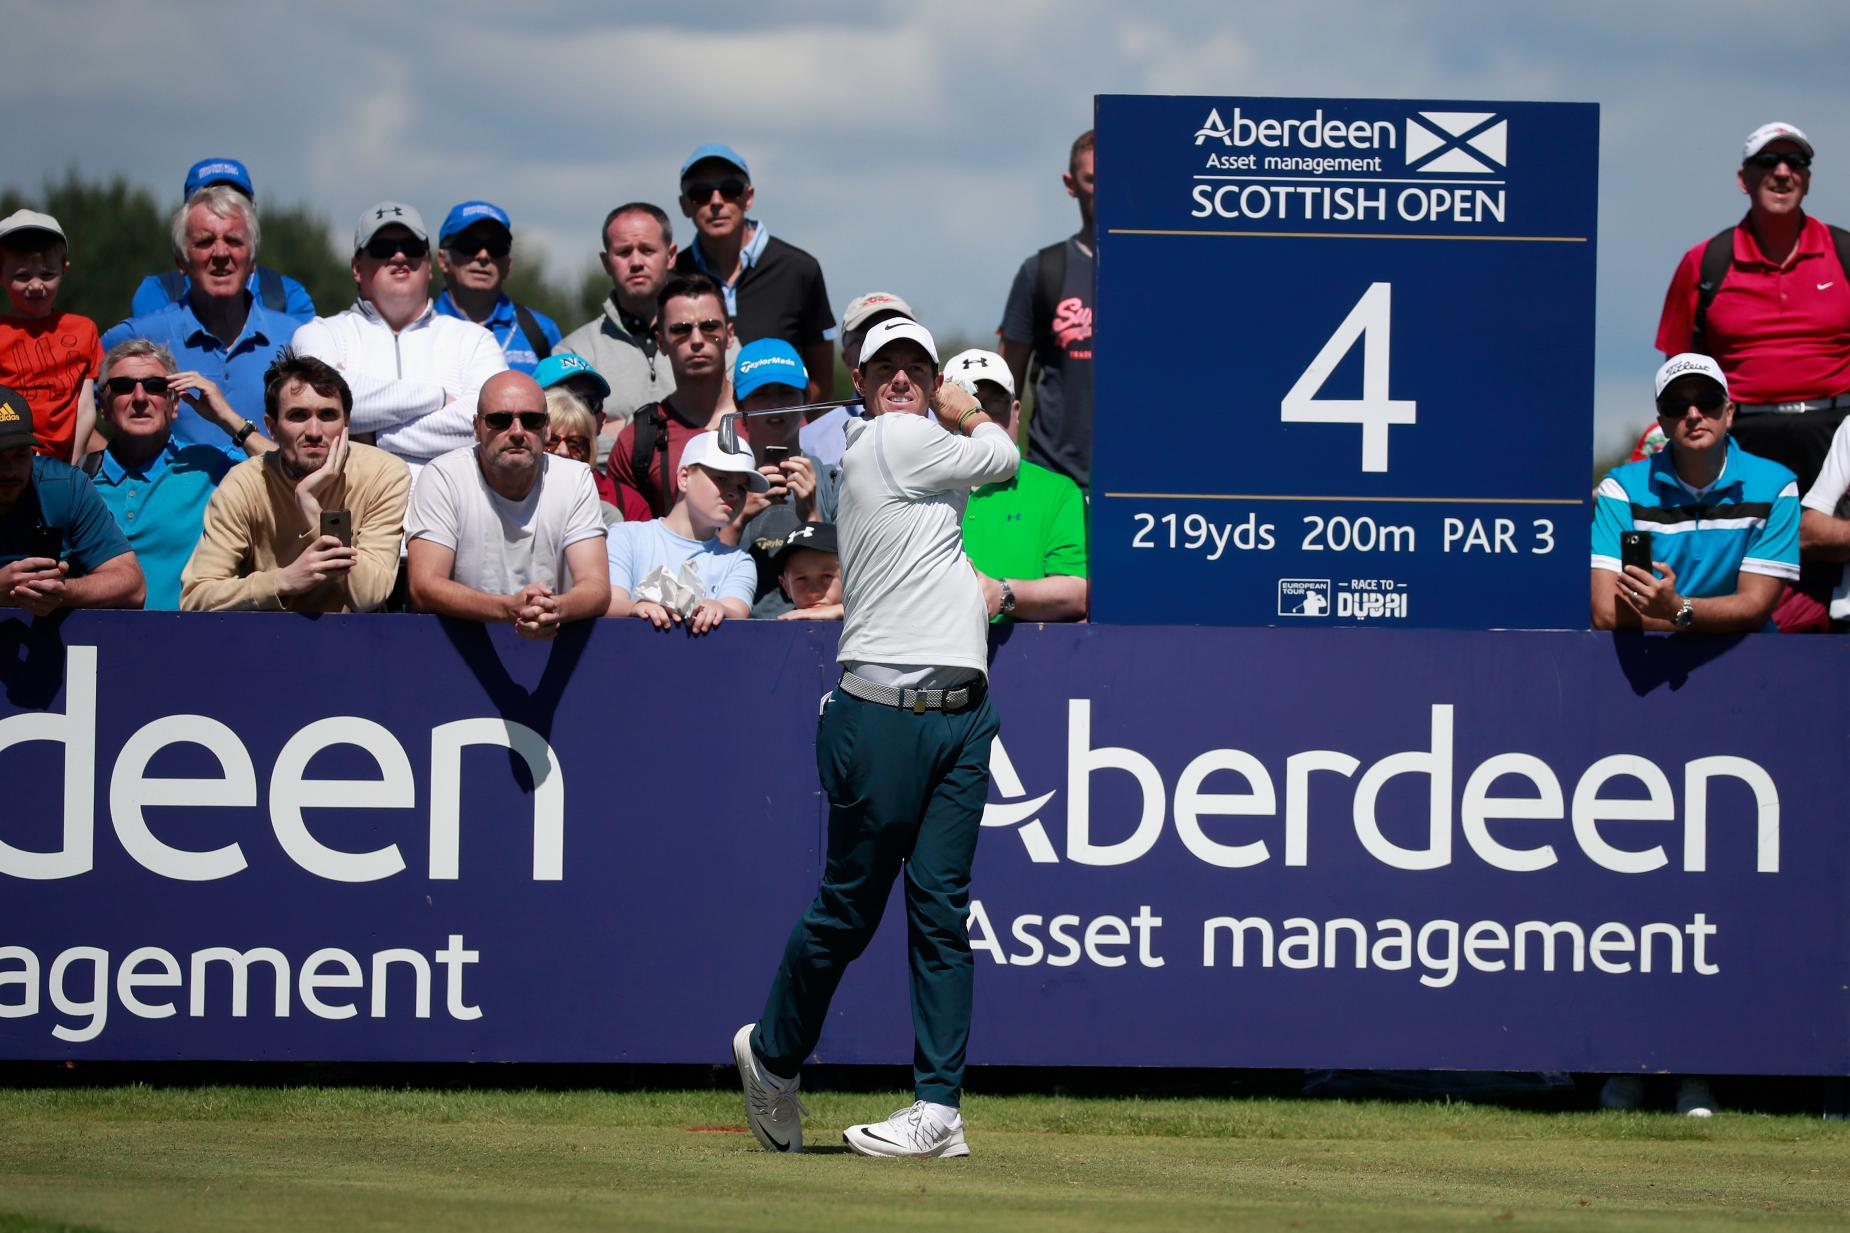 AAM Scottish Open - Previews